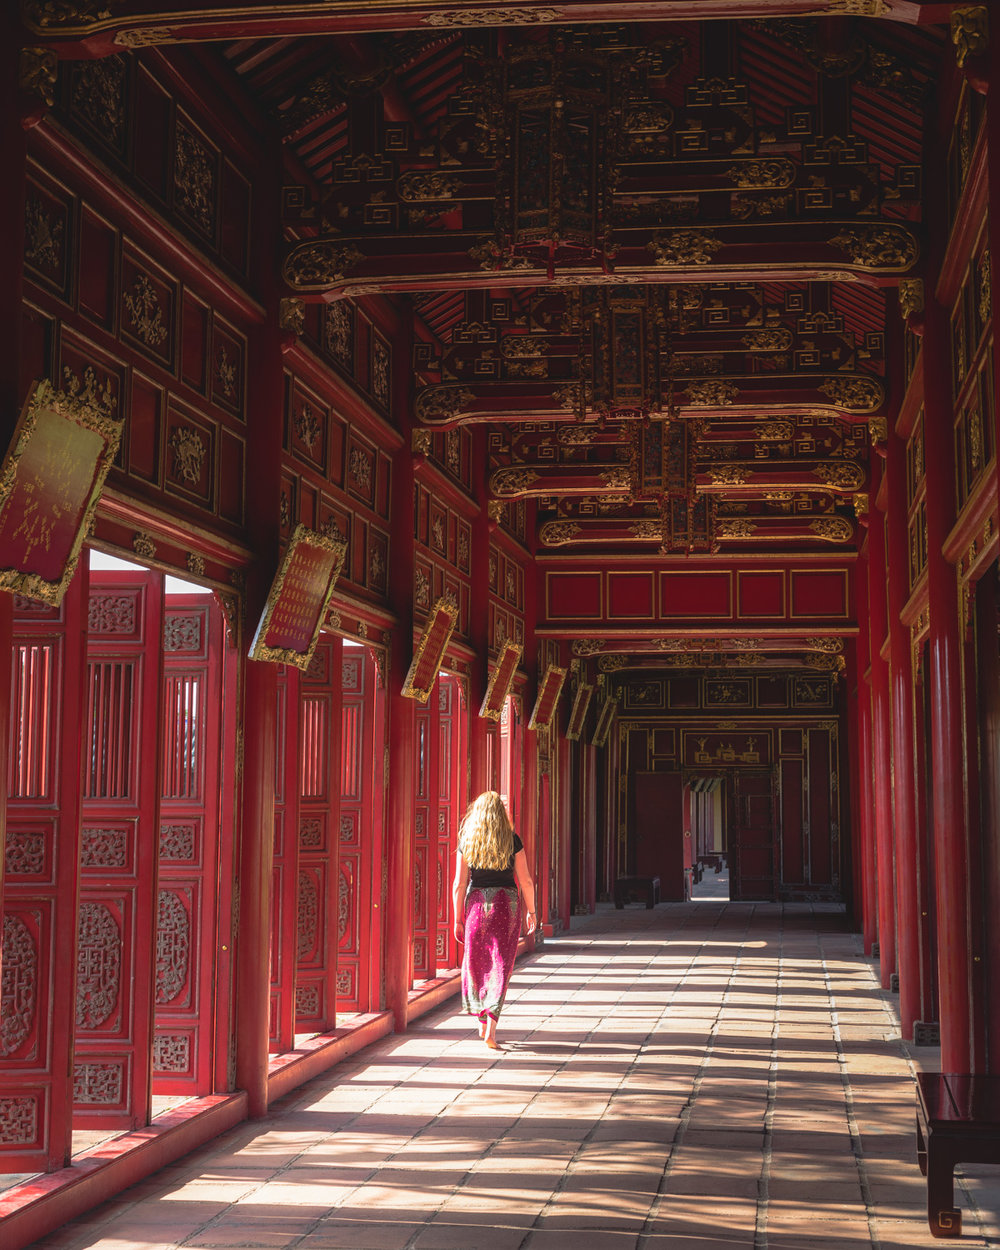 The beautiful long corridor at the Citadel in Hue